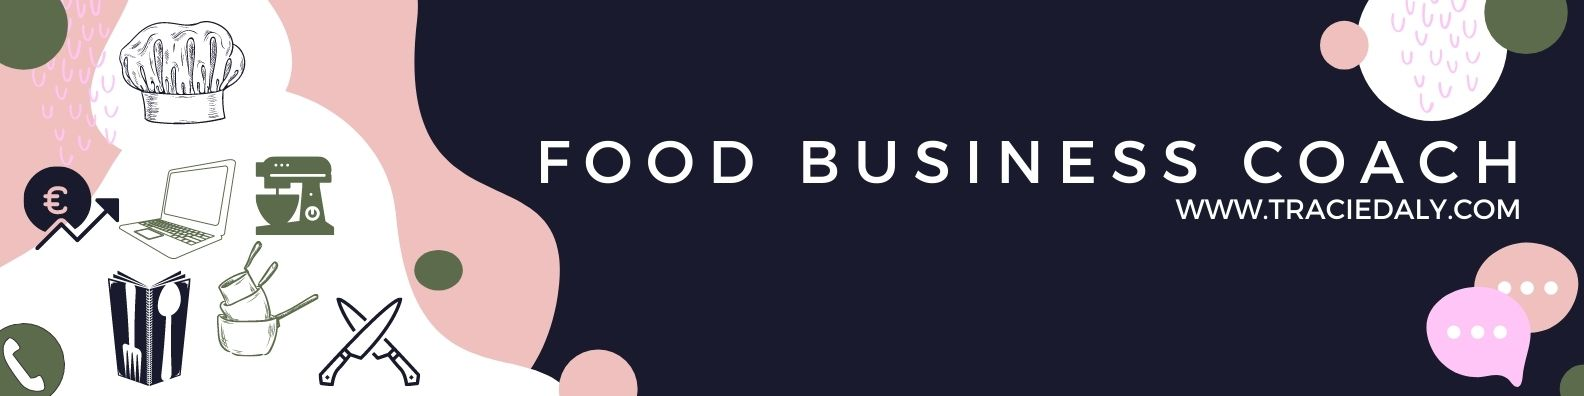 Tracie Daly Food Business Coach